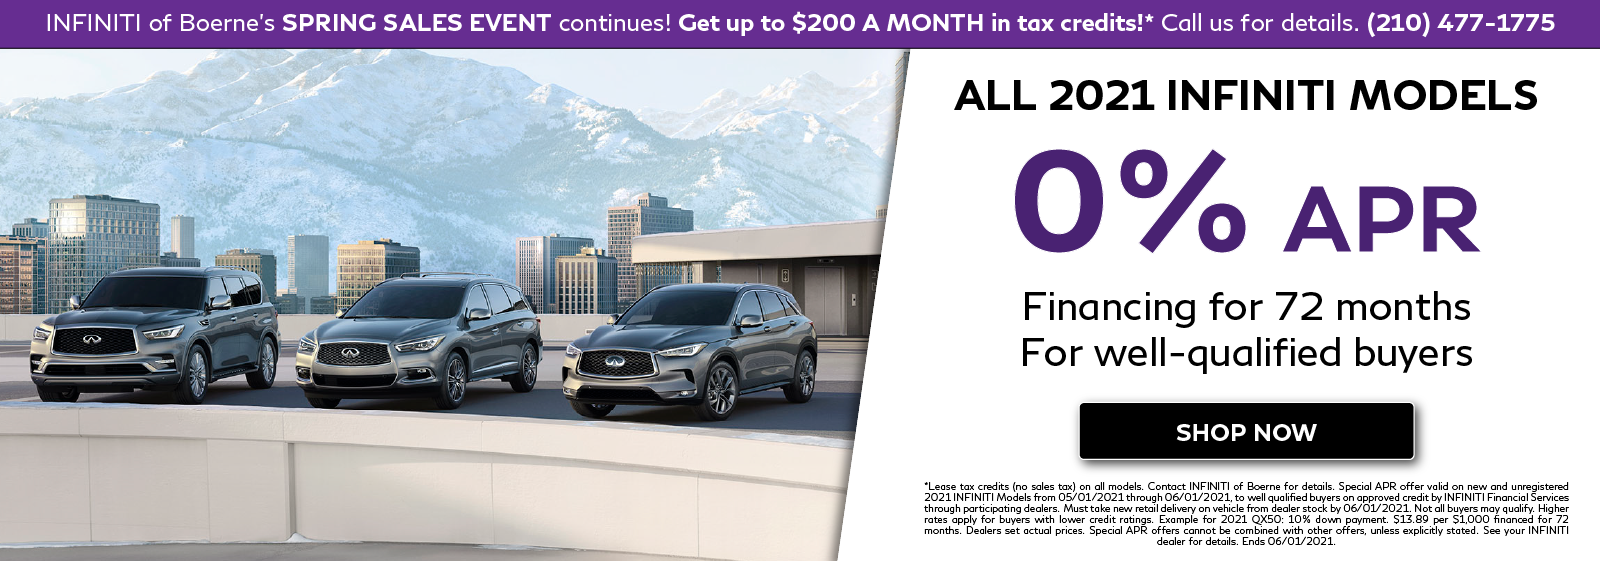 0% APR Financing on all new 2021 INFINITI models. Click to shop now.